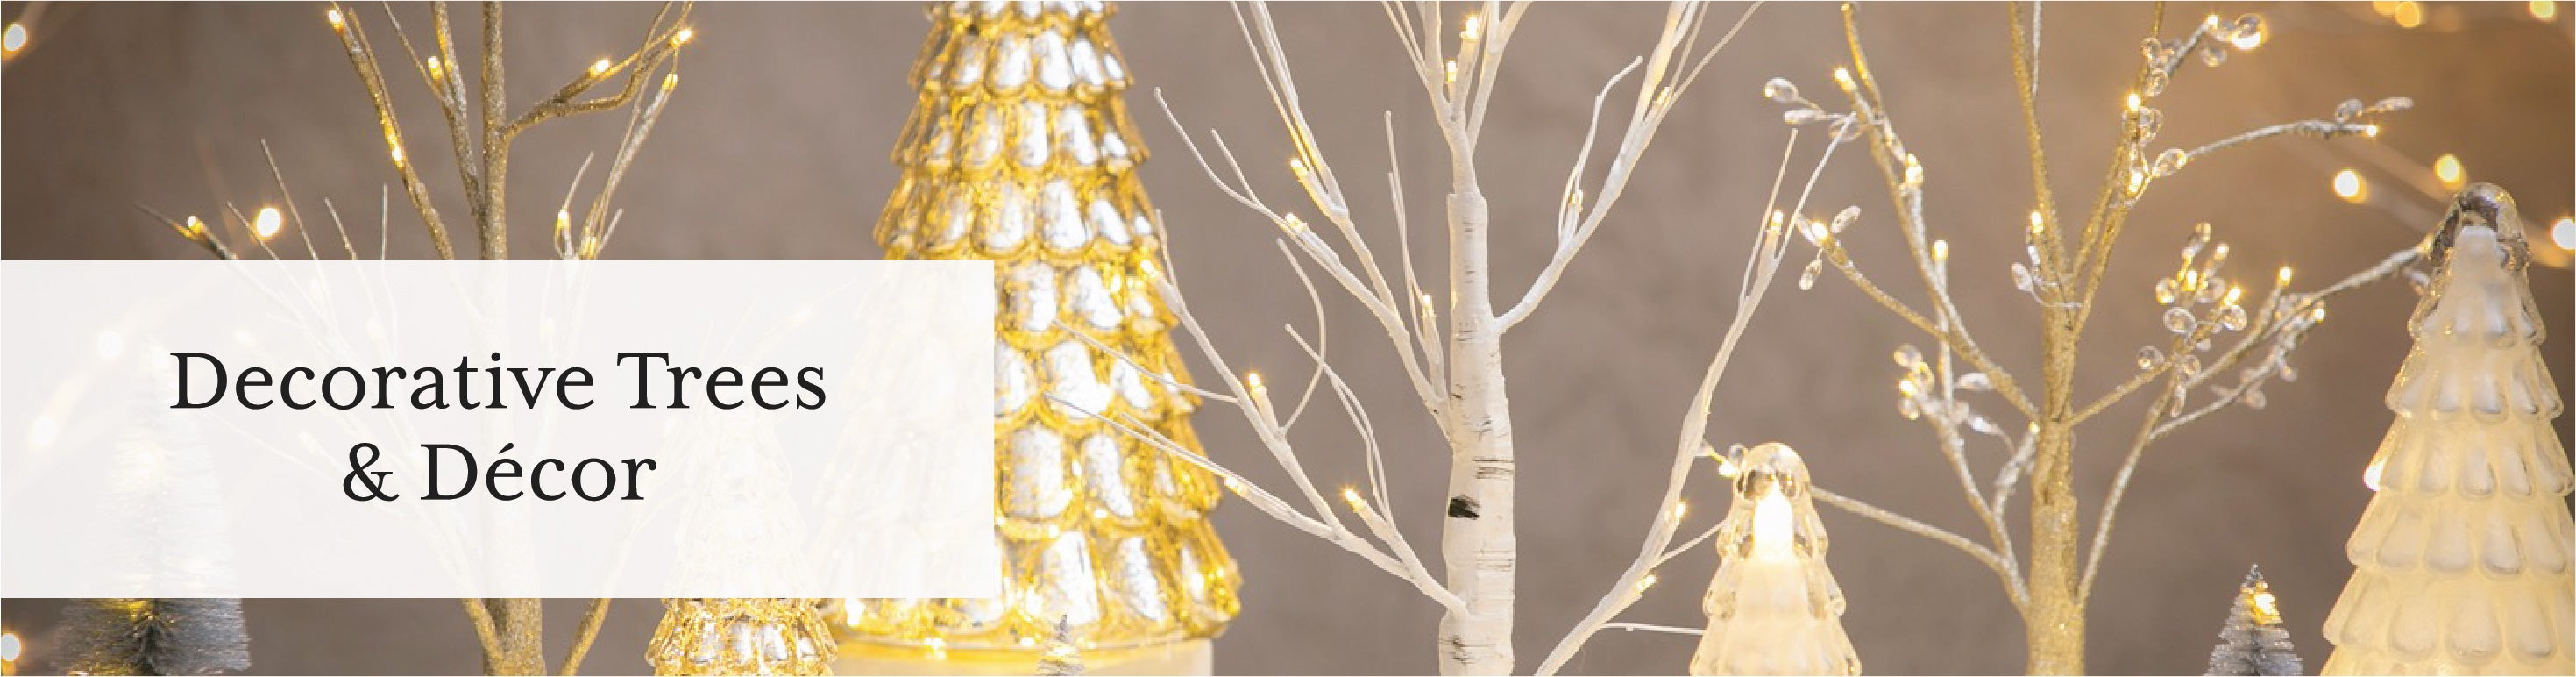 Decorative Trees & Decor